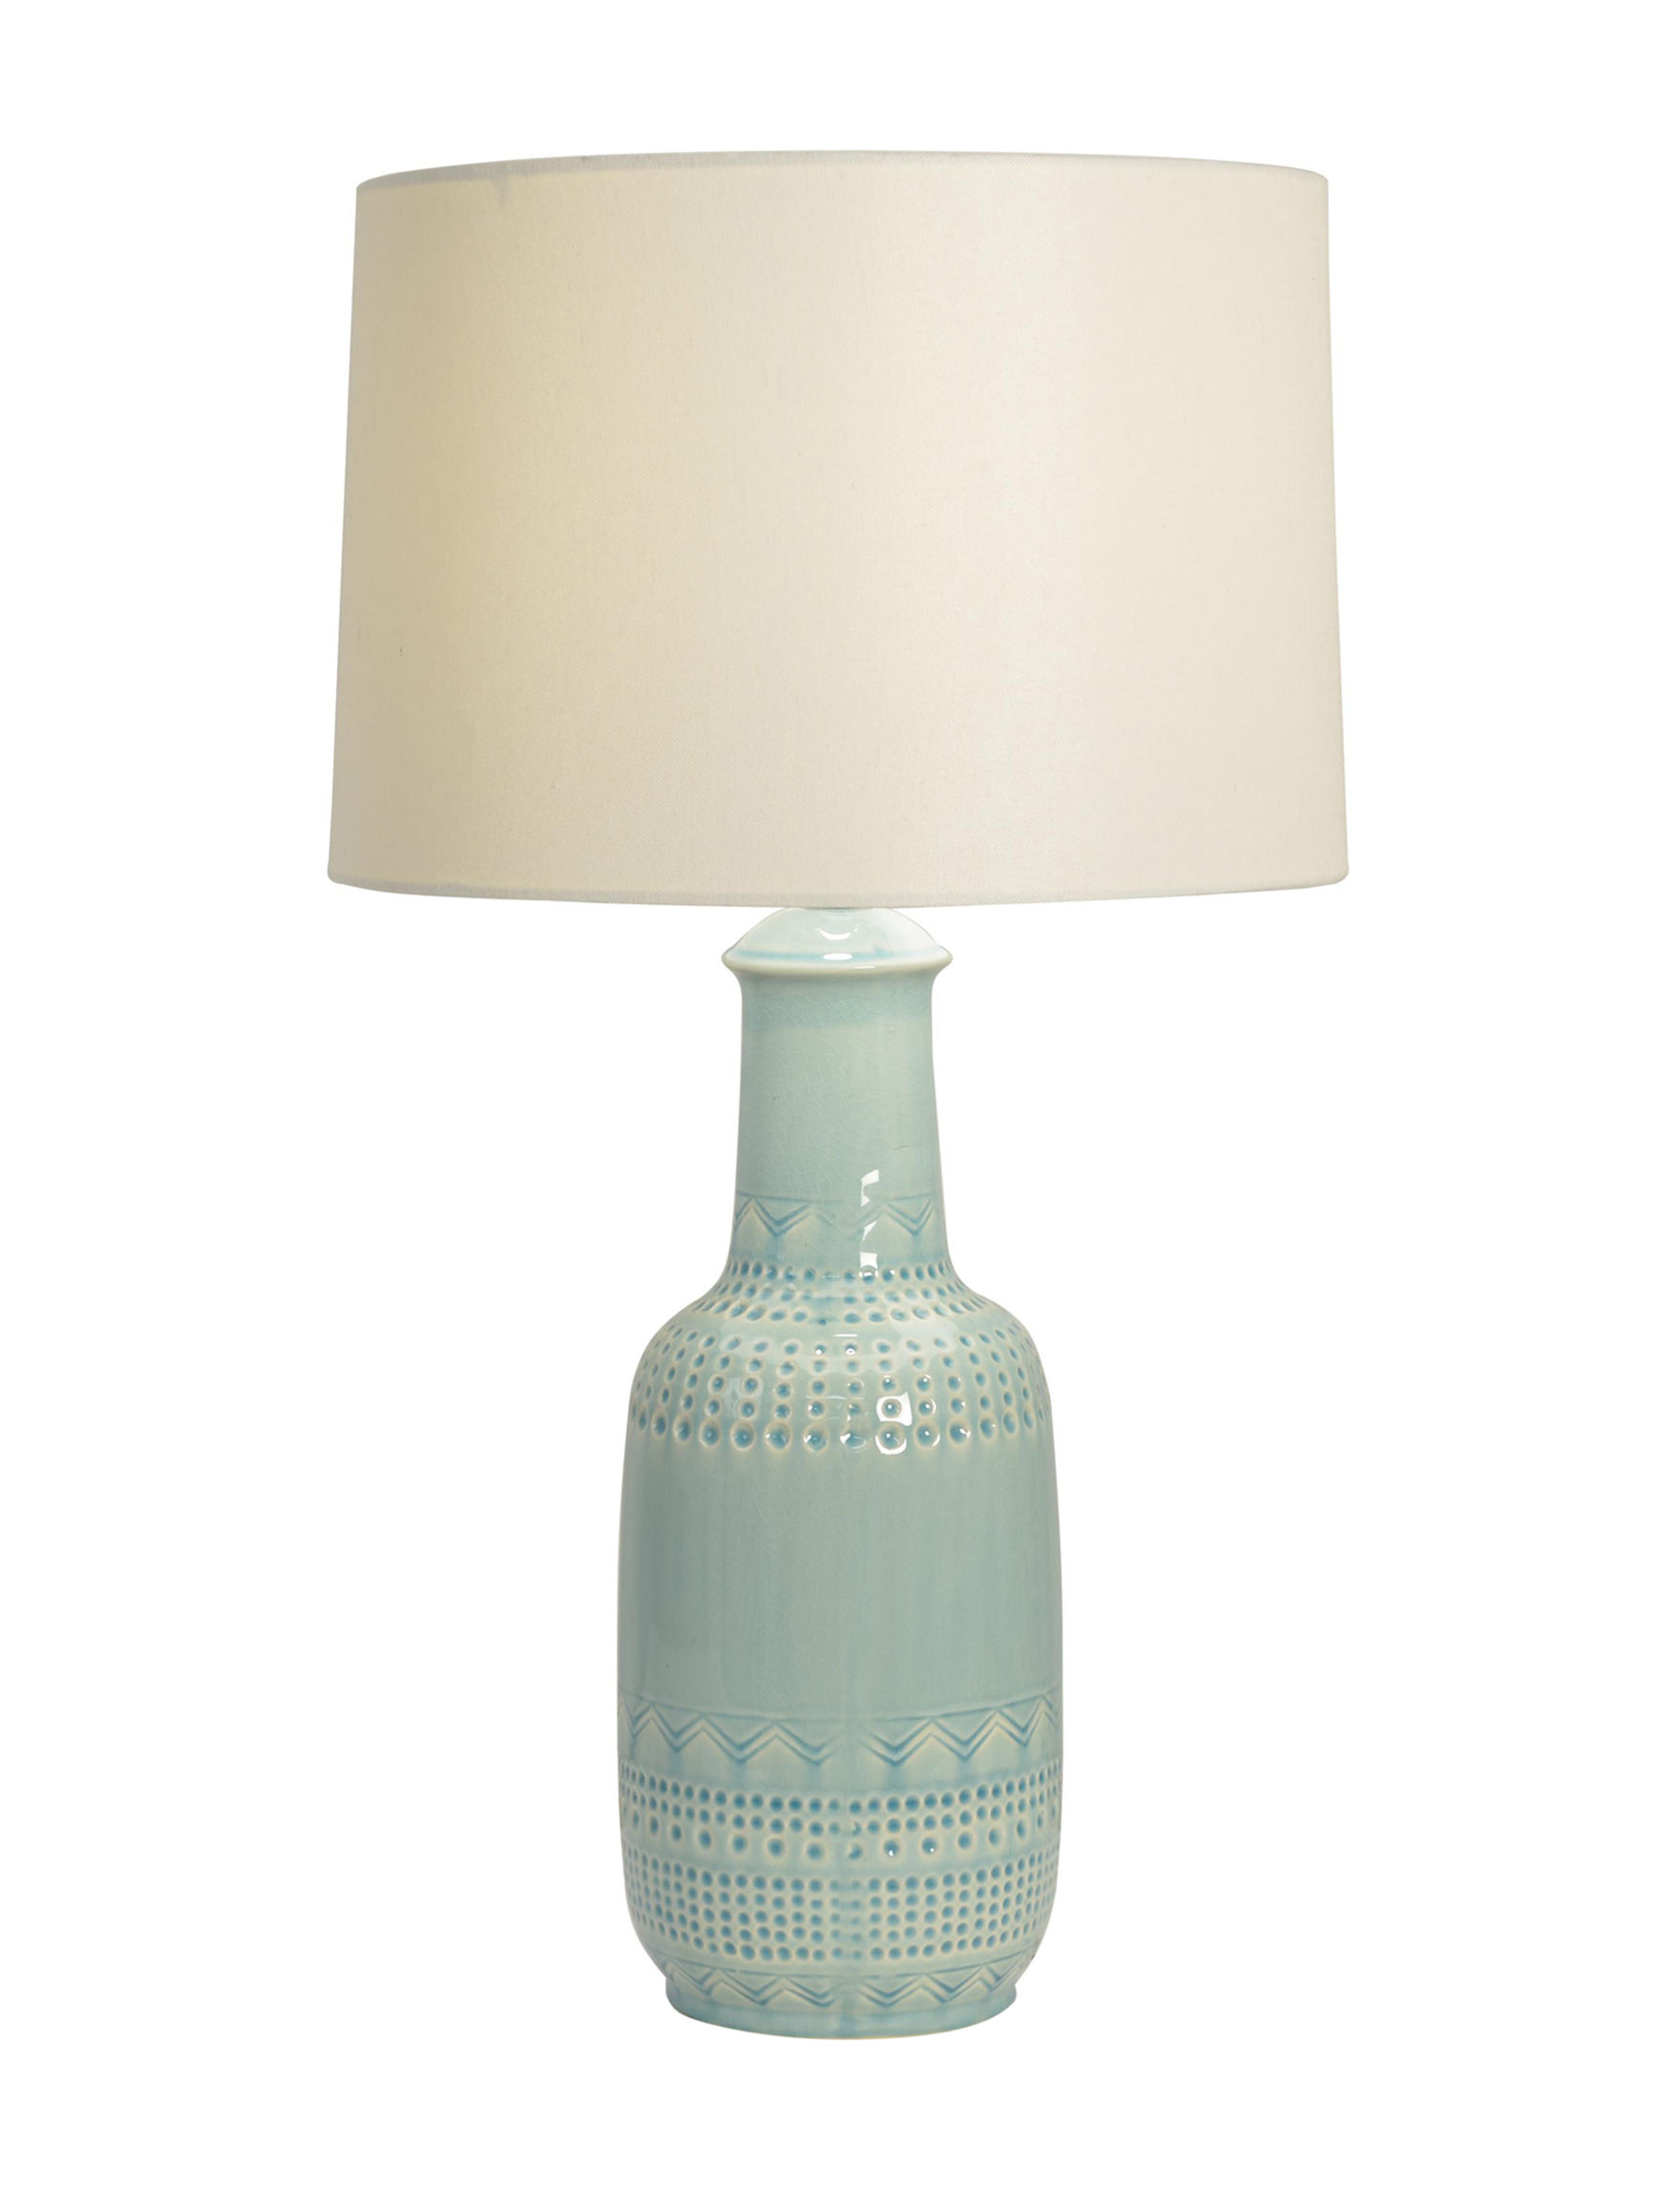 Decor Therapy Green Table Lamps Lighting & Lamps